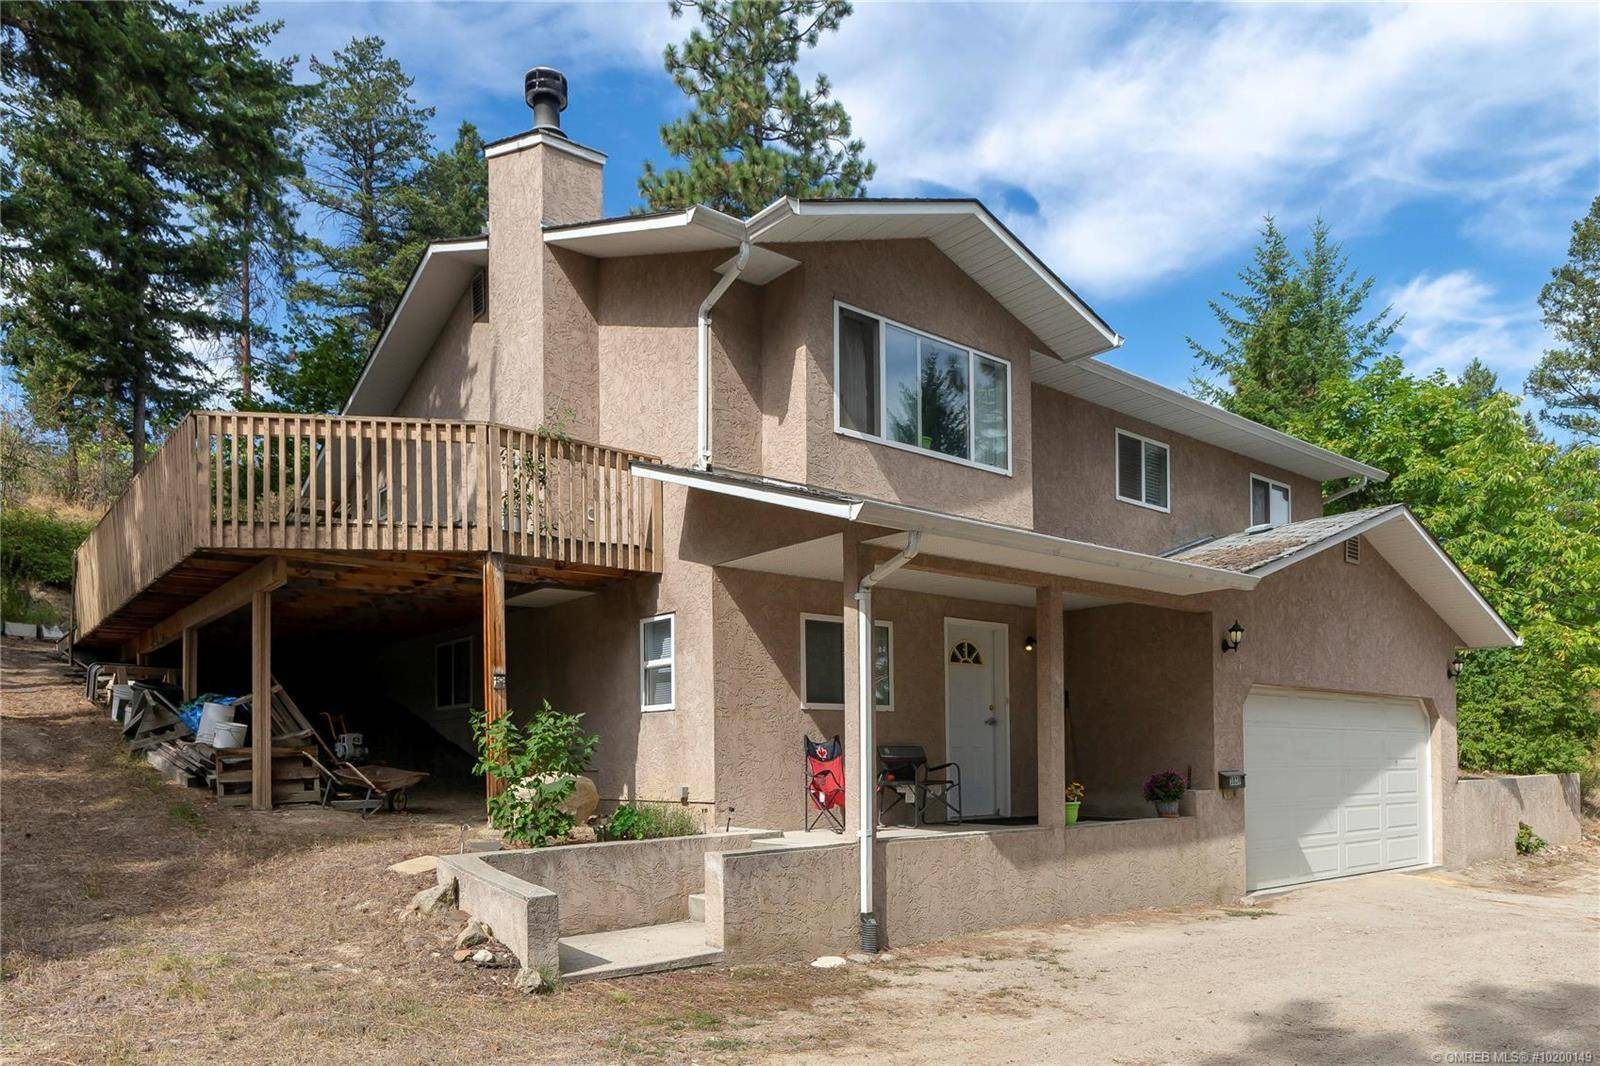 House for sale at 3830 Gellatly Rd South West Kelowna British Columbia - MLS: 10200149